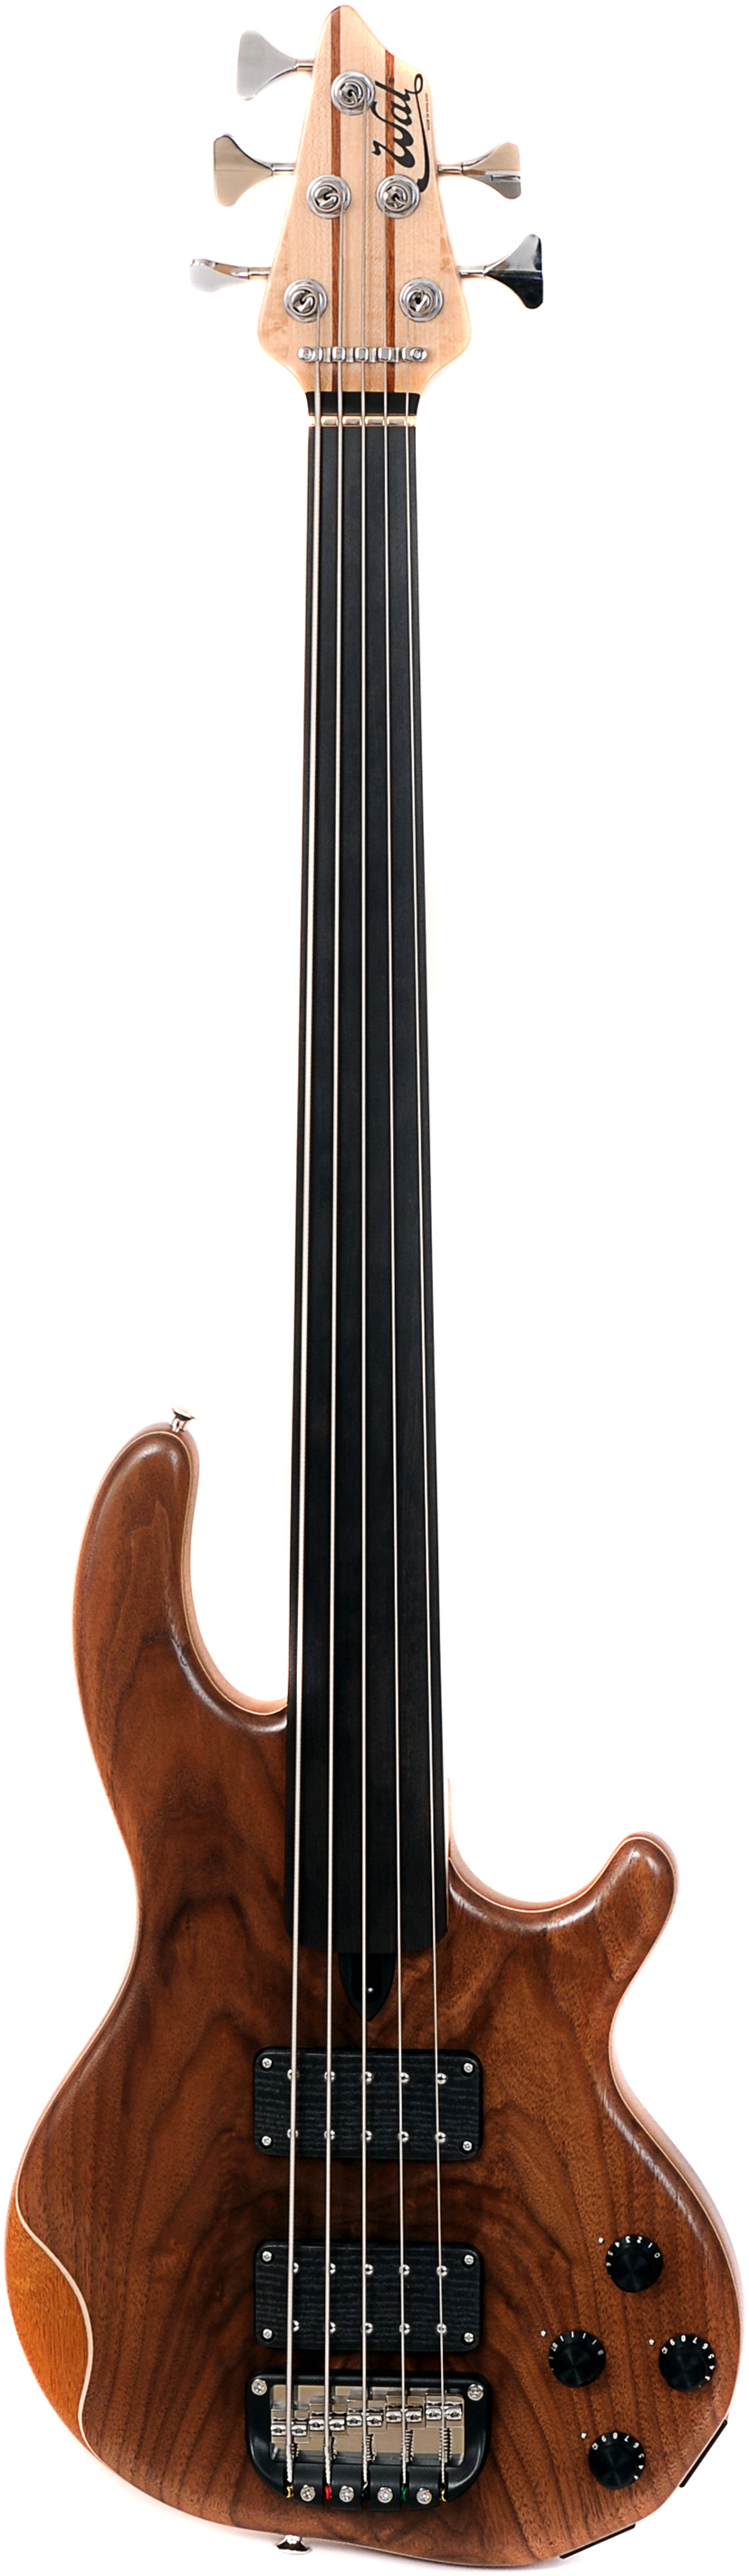 5-string Mk3 with American walnut facings and a plain fretless ebony fingerboard.